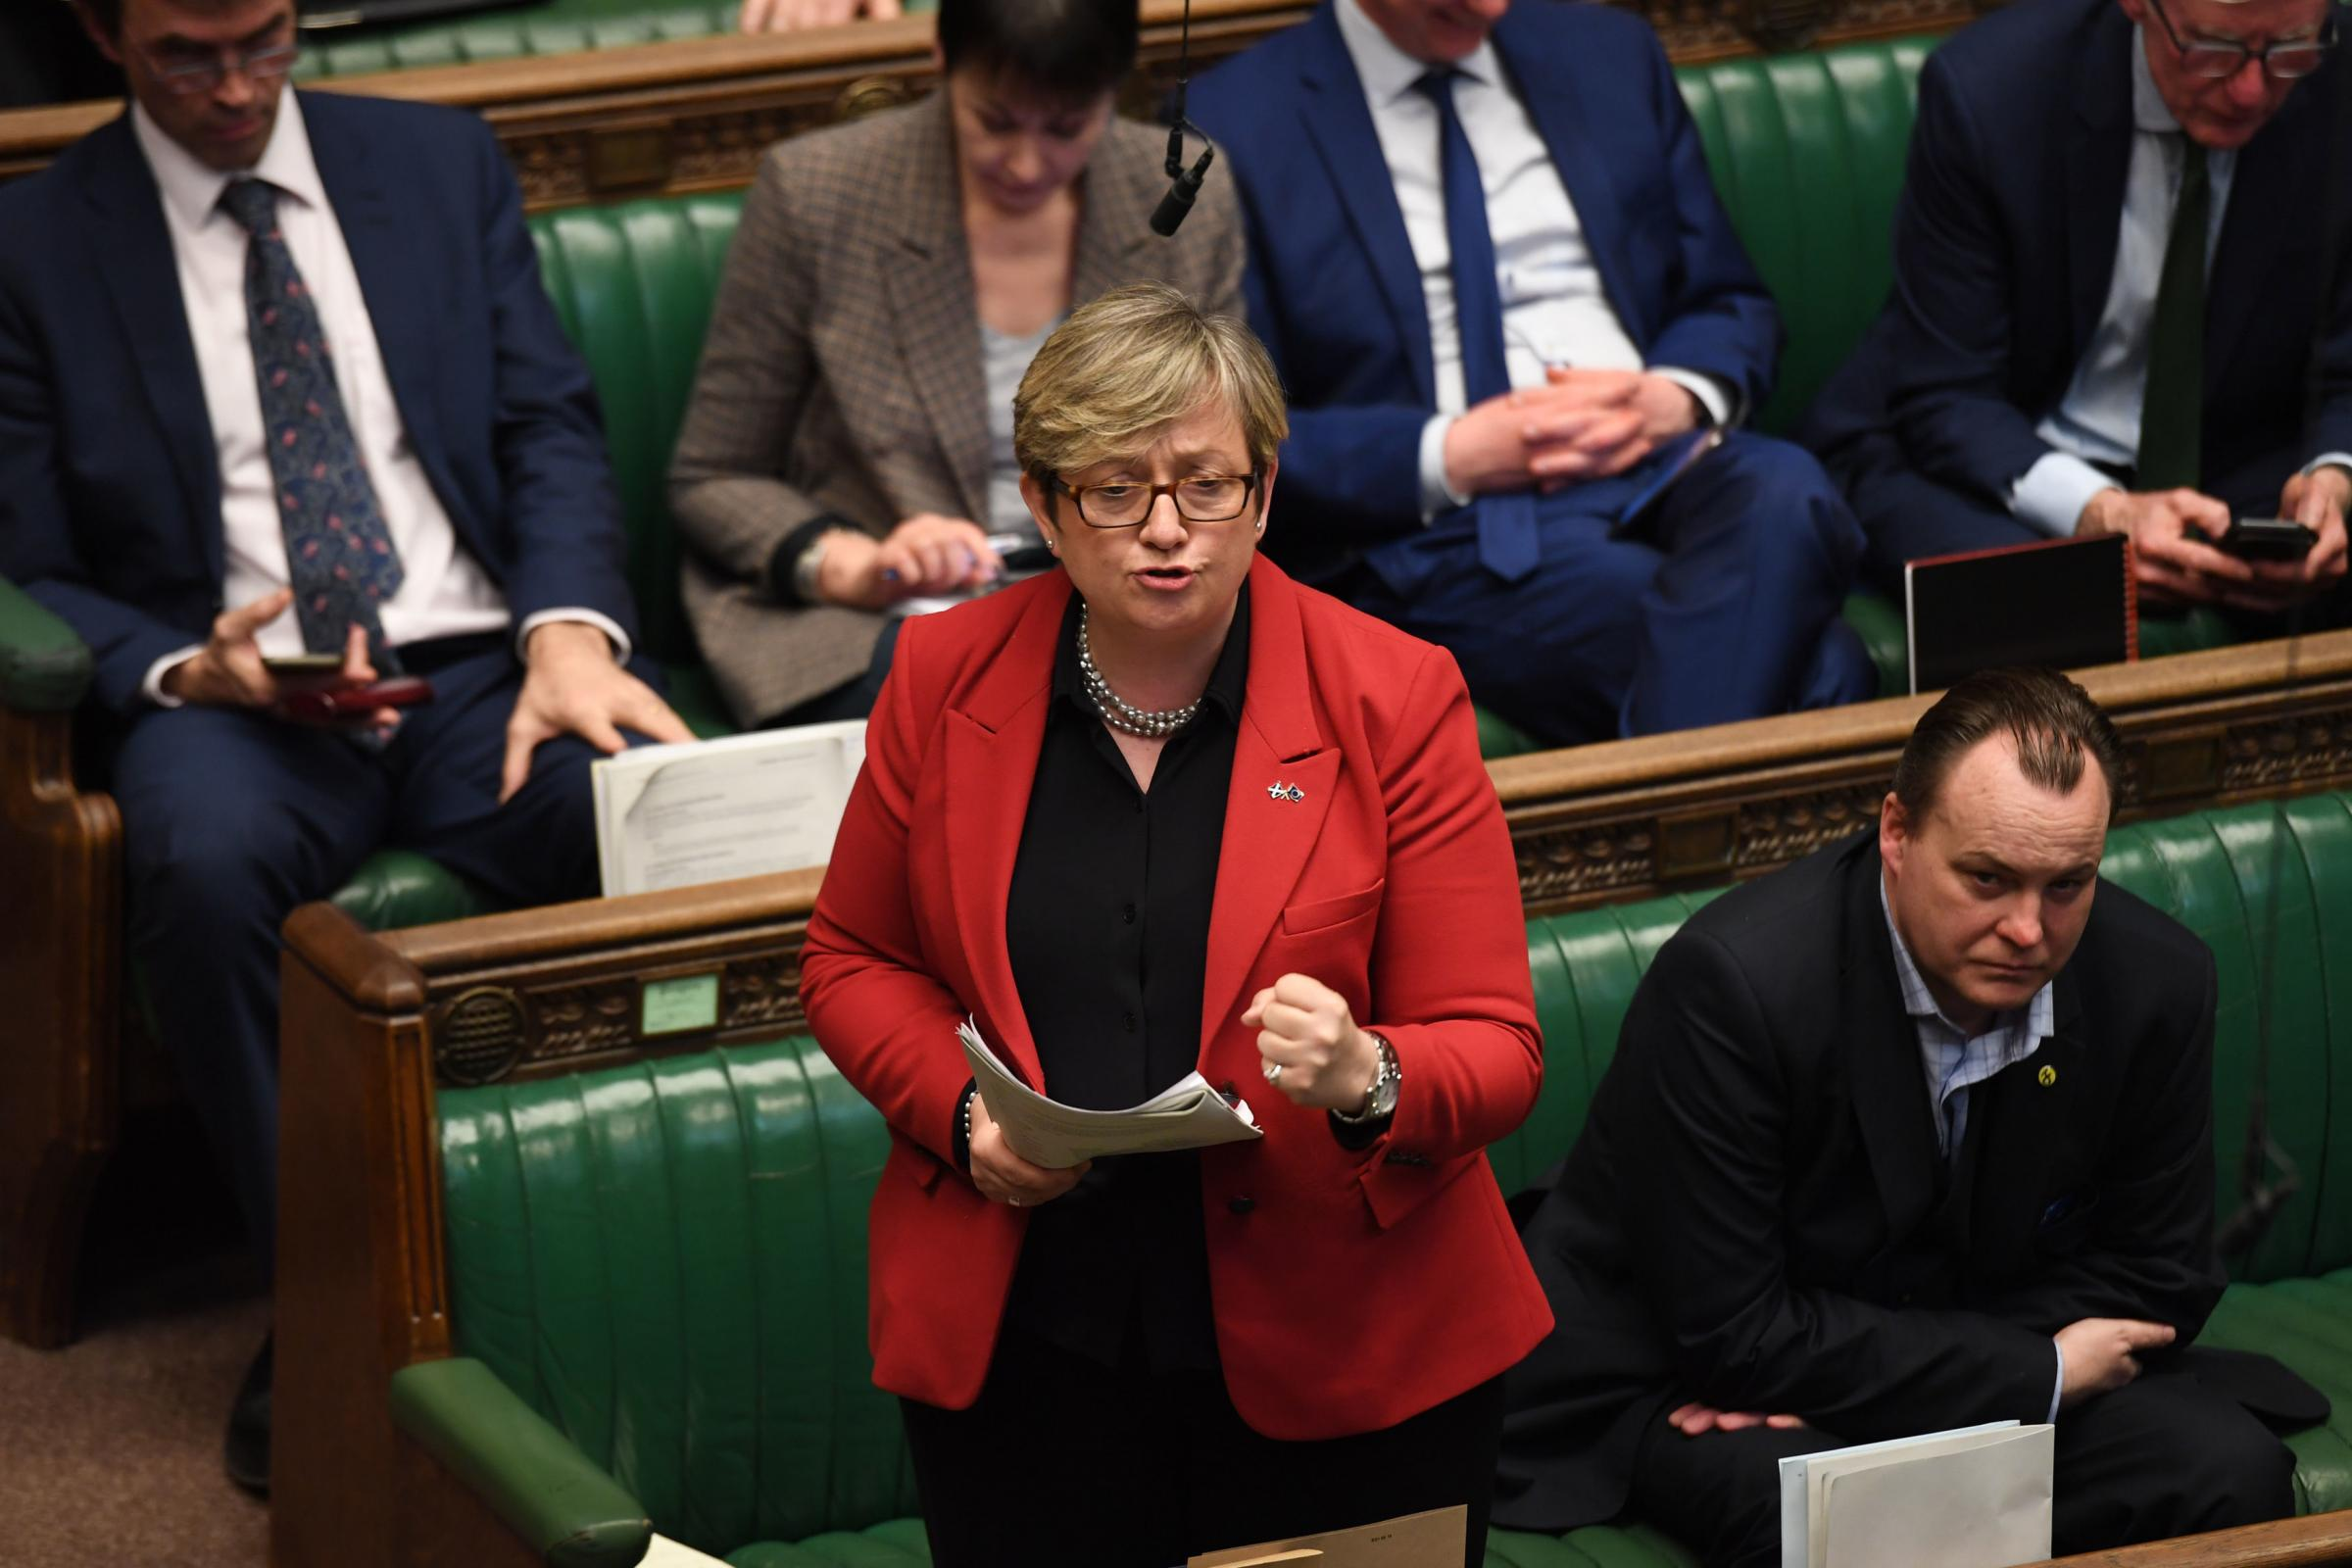 SNP MP Joanna Cherry hit out at Labour for abstaining on her motion. Photograph: UK Parliament/Jessica Taylor